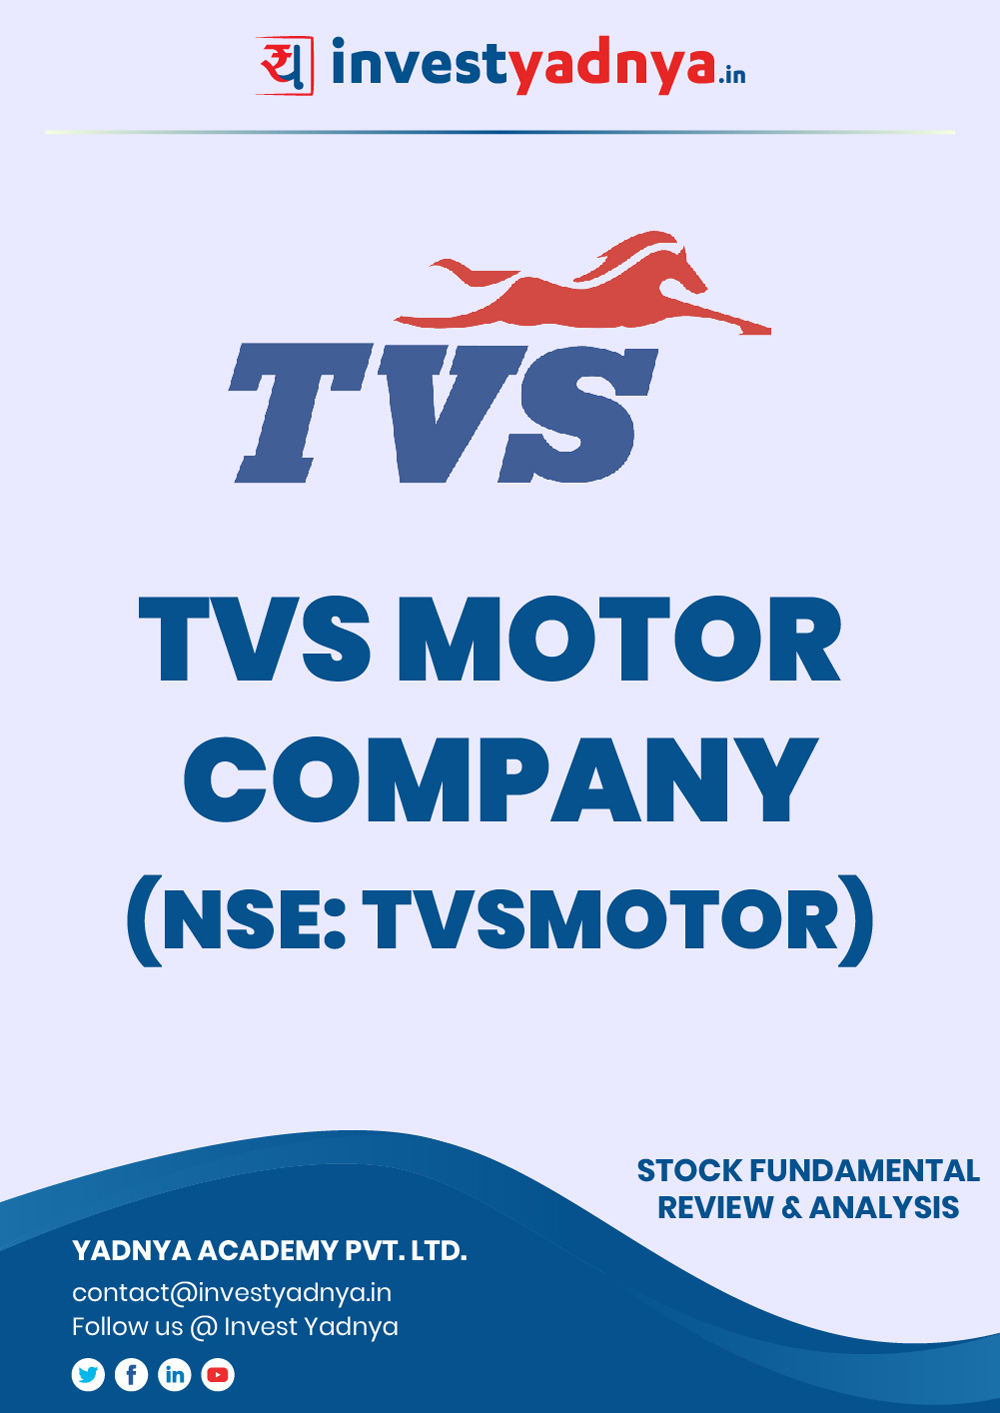 TVS Motor Company Ltd. company/Stock Review & Analysis based on Q22019-20 and FY2018-19 data. The book contains Fundamental Analysis of the company considering both Quantitative (Financial) and Qualitative parameters. Book is updated as on 2nd Dec, 2019.